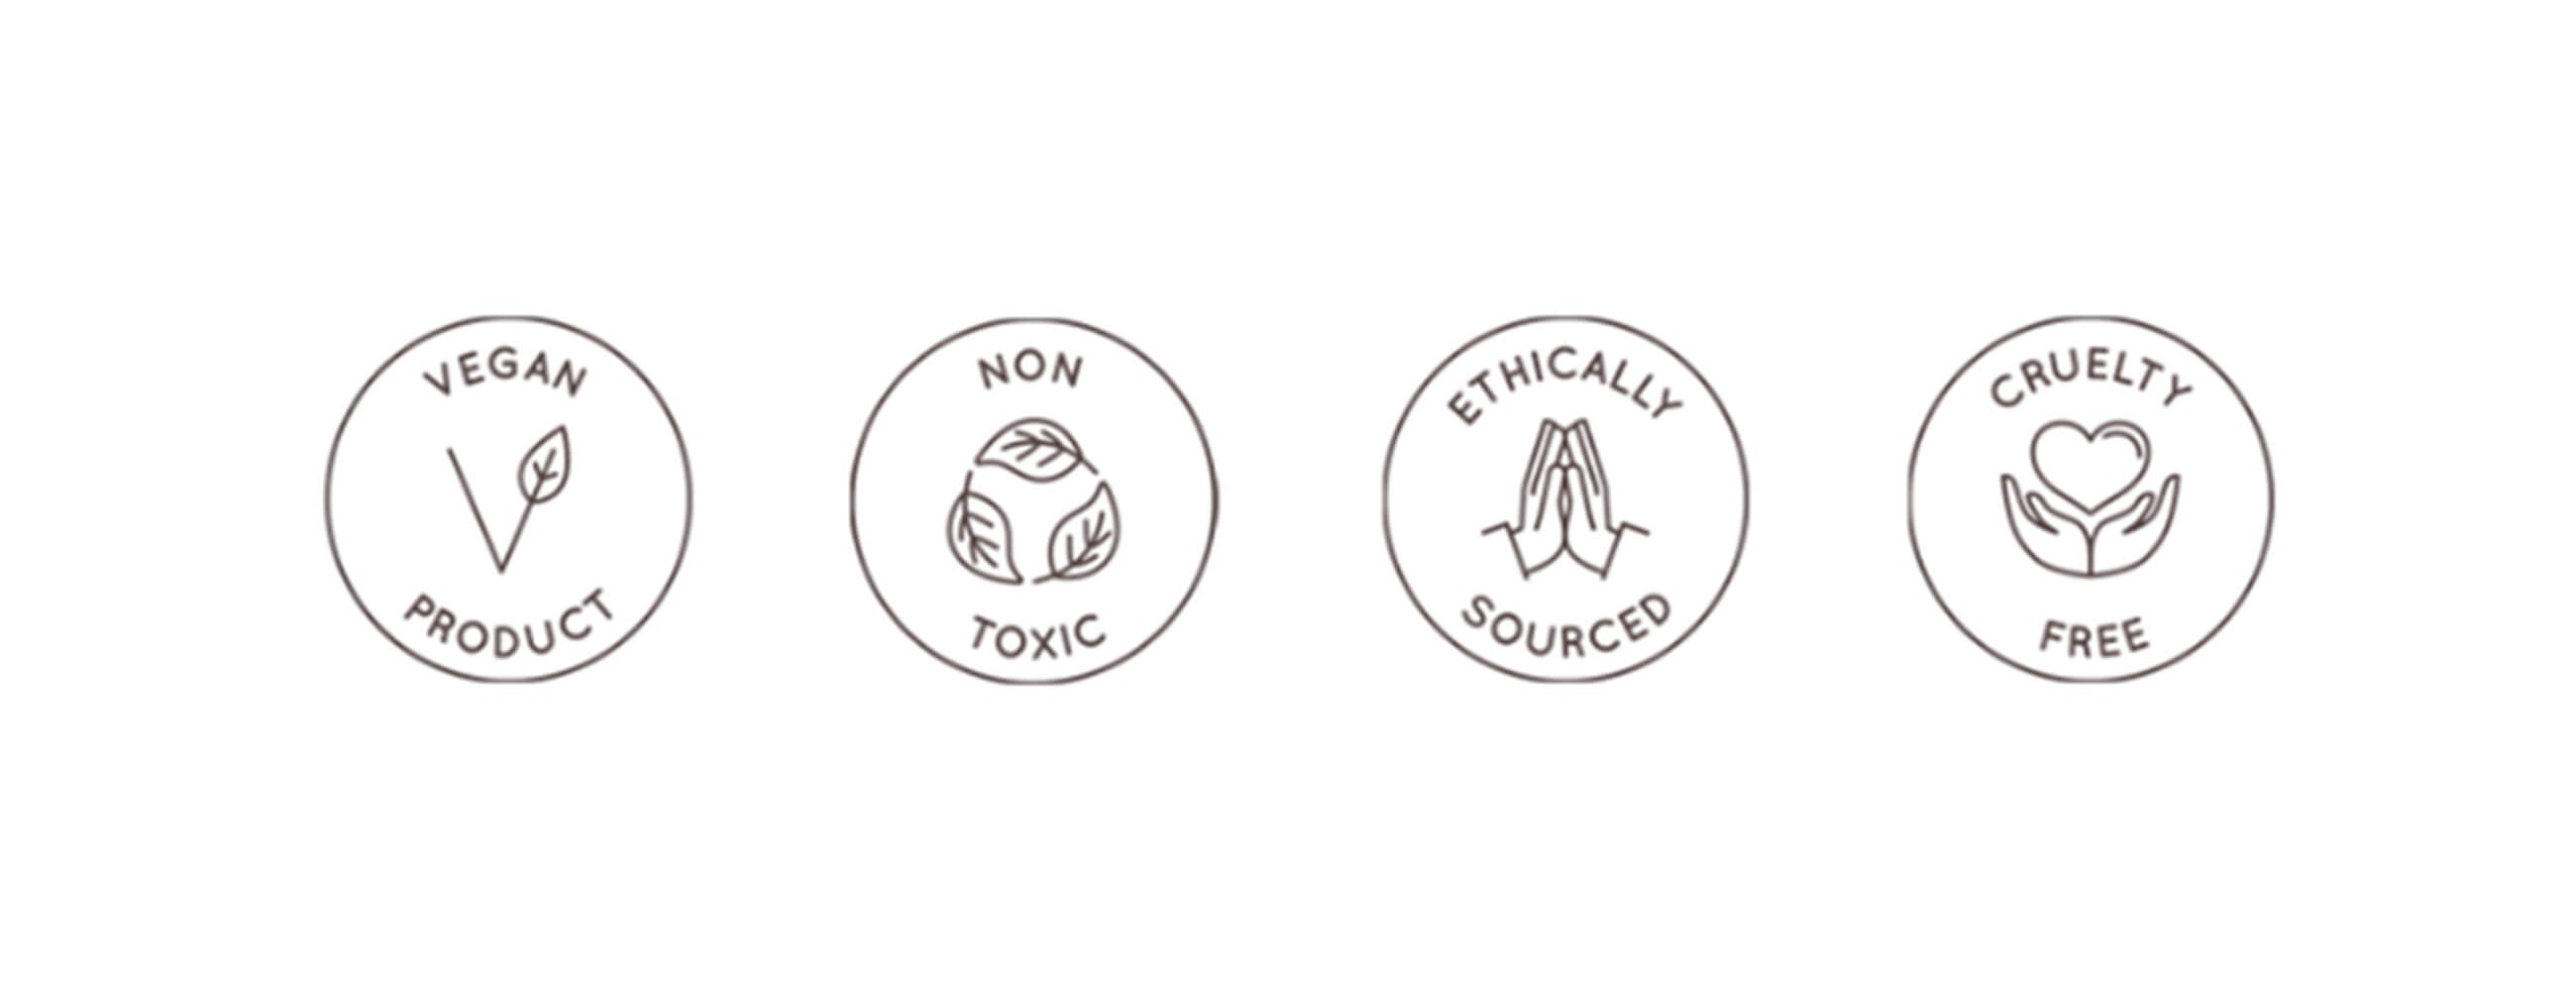 vegan and cruelty-free and non-toxic beauty standard